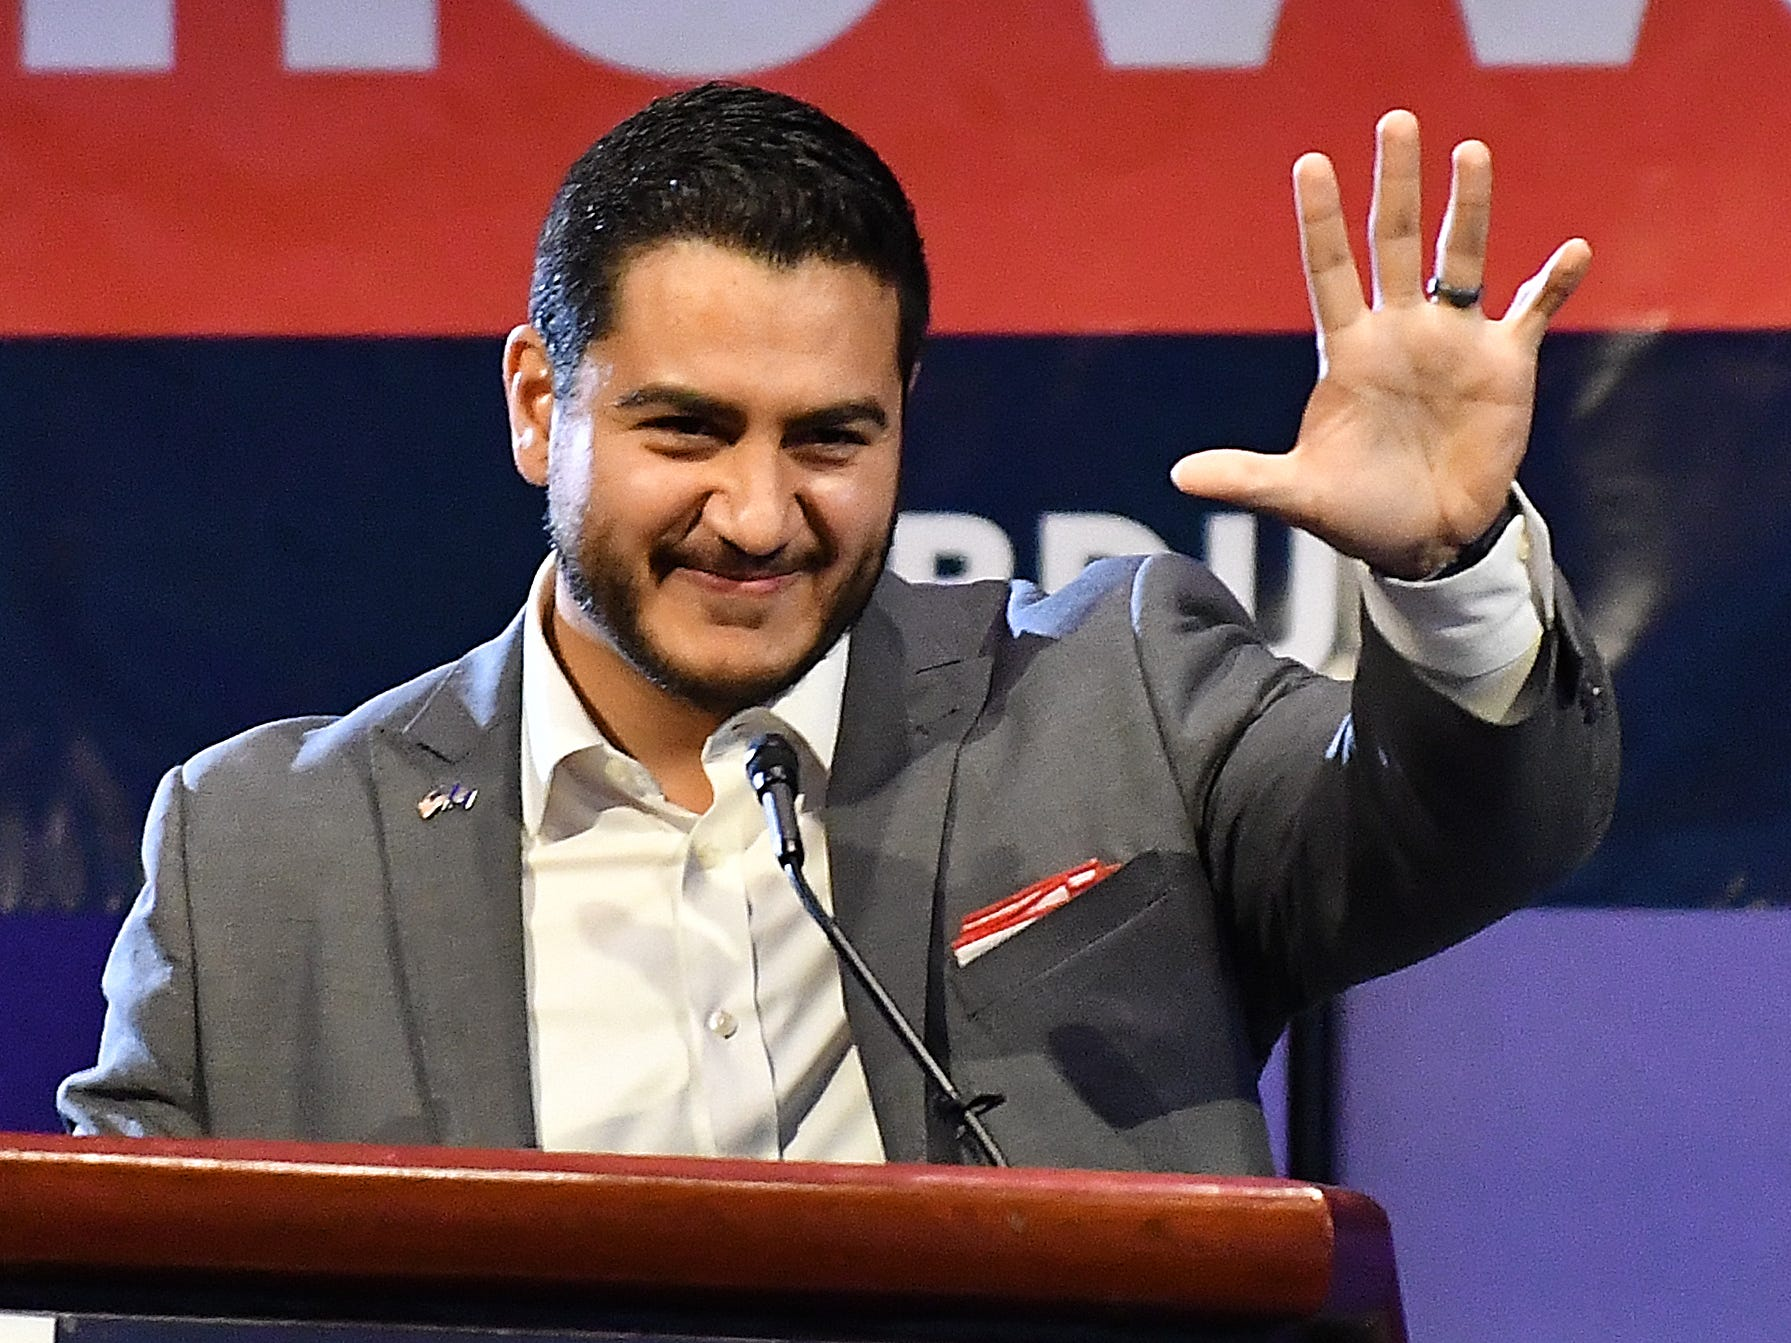 Michigan Democratic gubernatorial candidate Abdul El-Sayed speaks at Cobo Center.